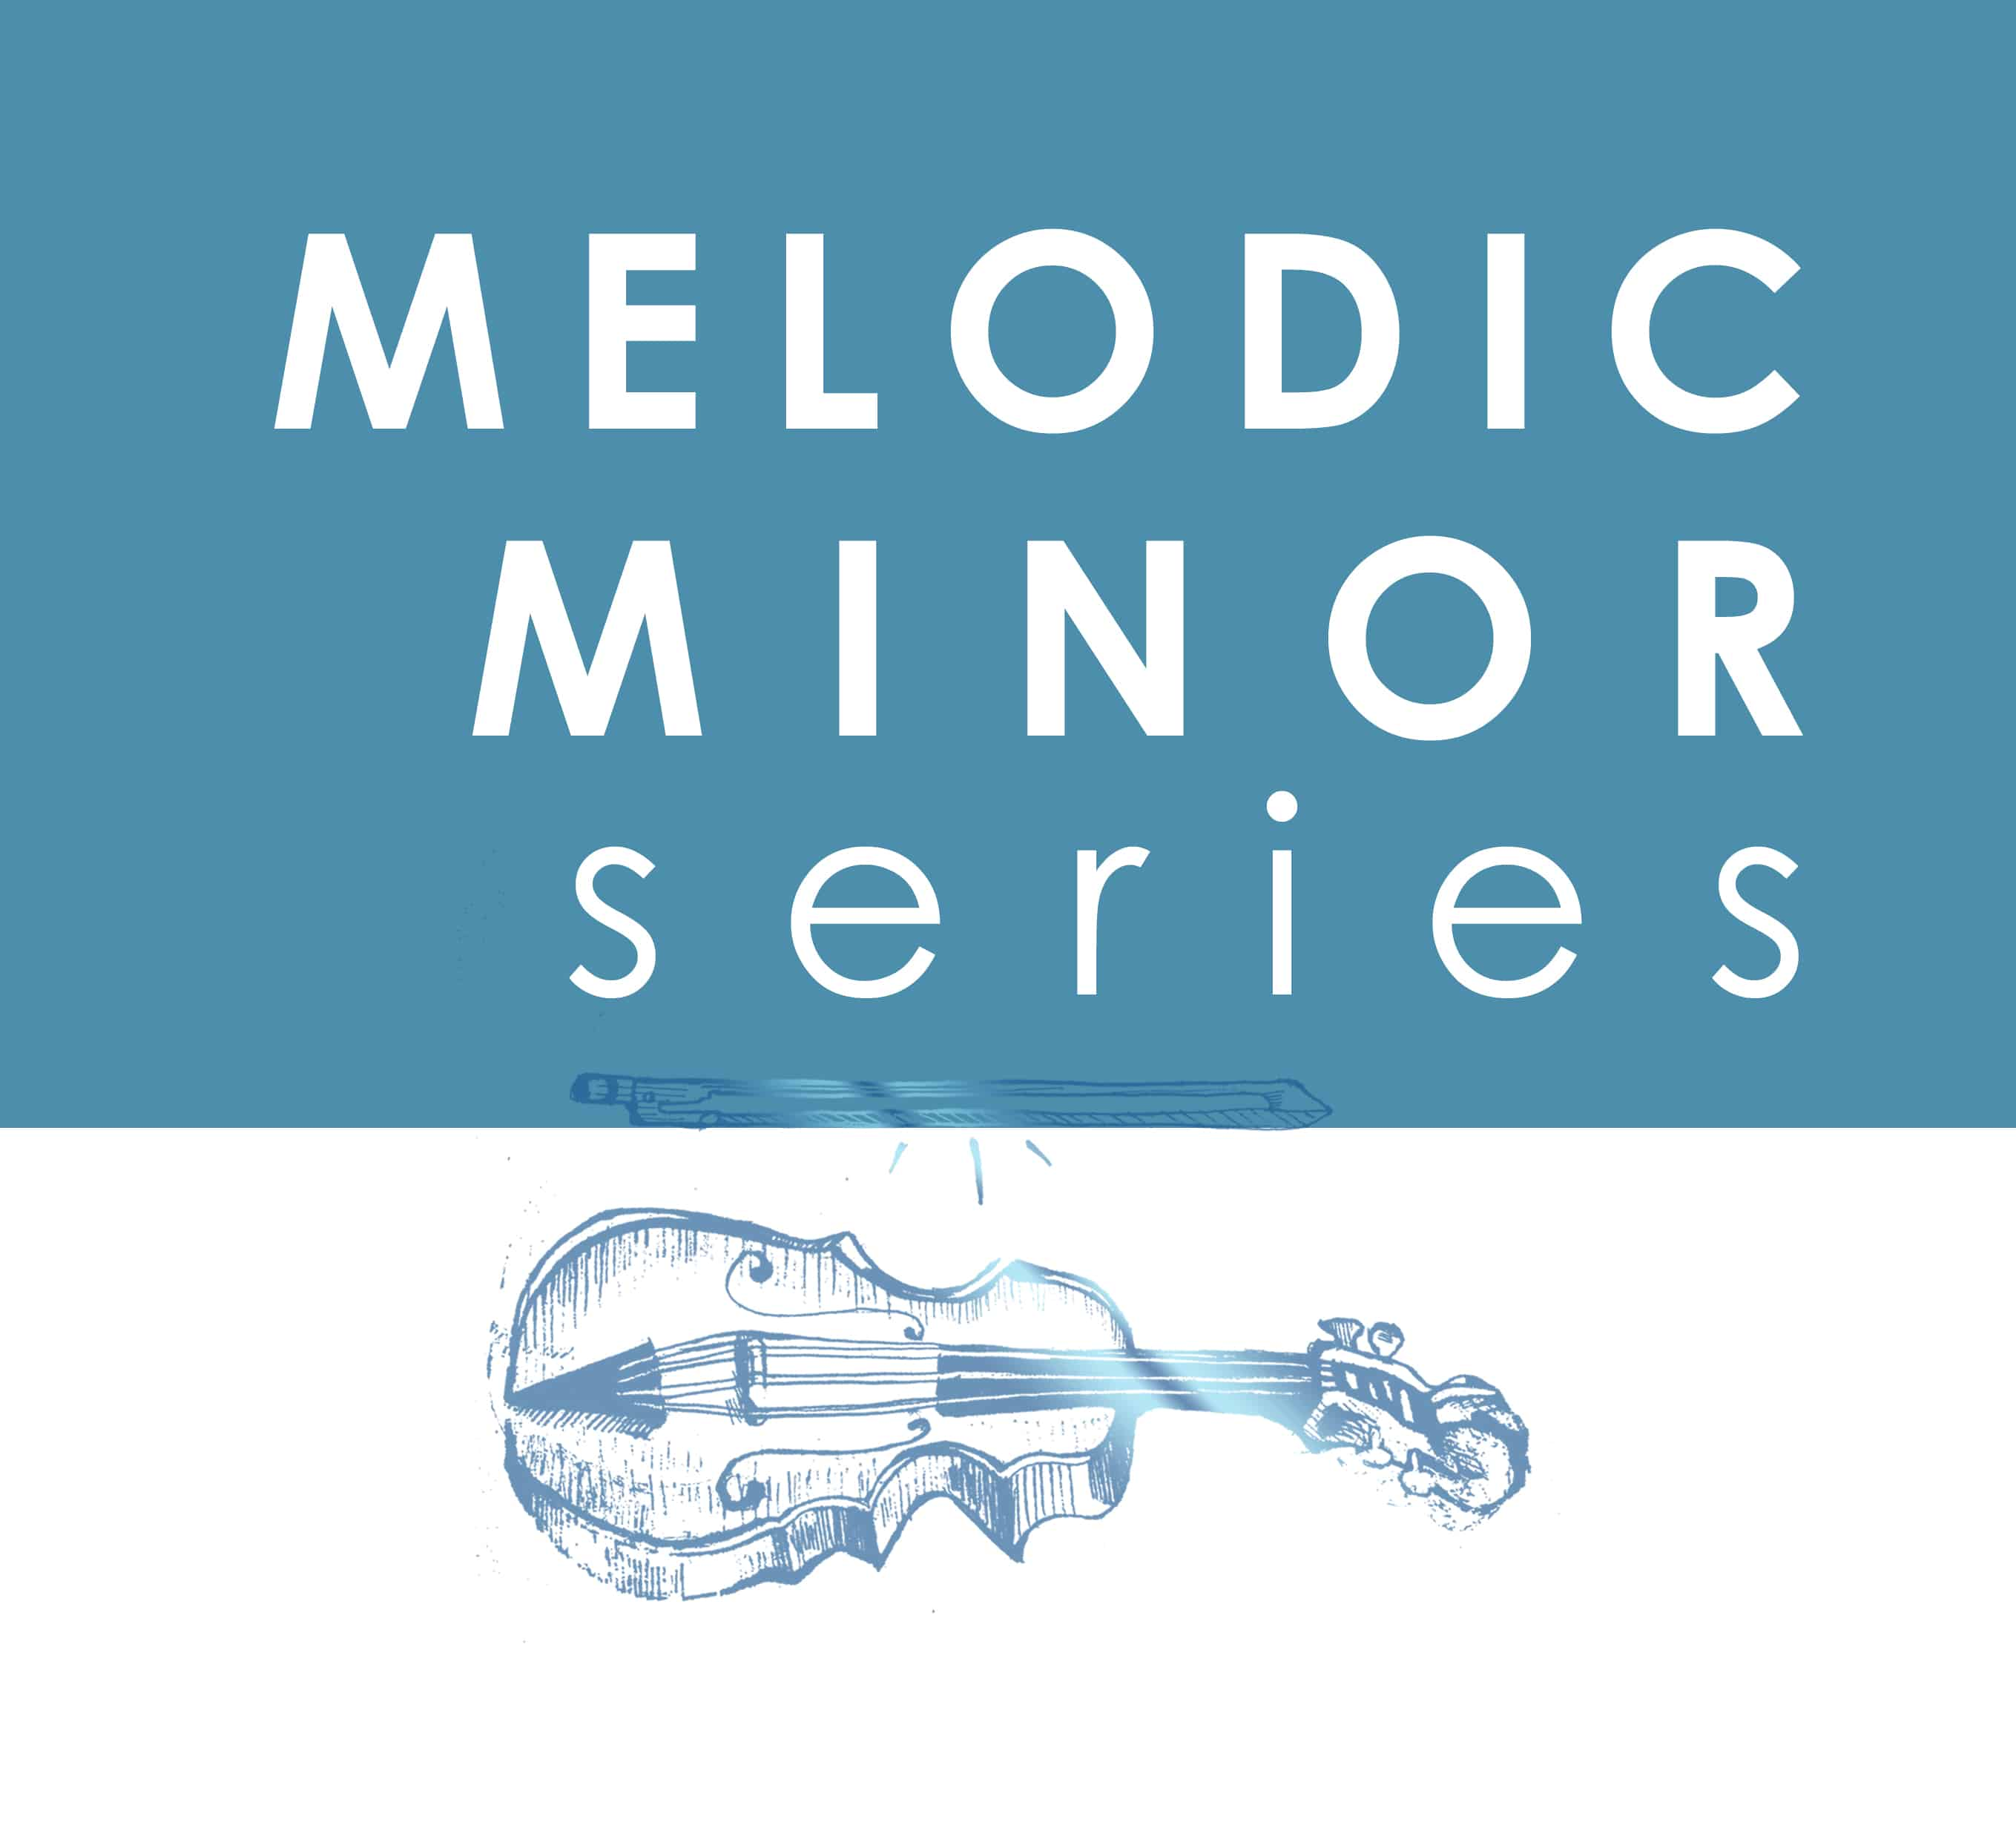 Melodic Minor Scale Master Series (Video Series + Additional Materials)